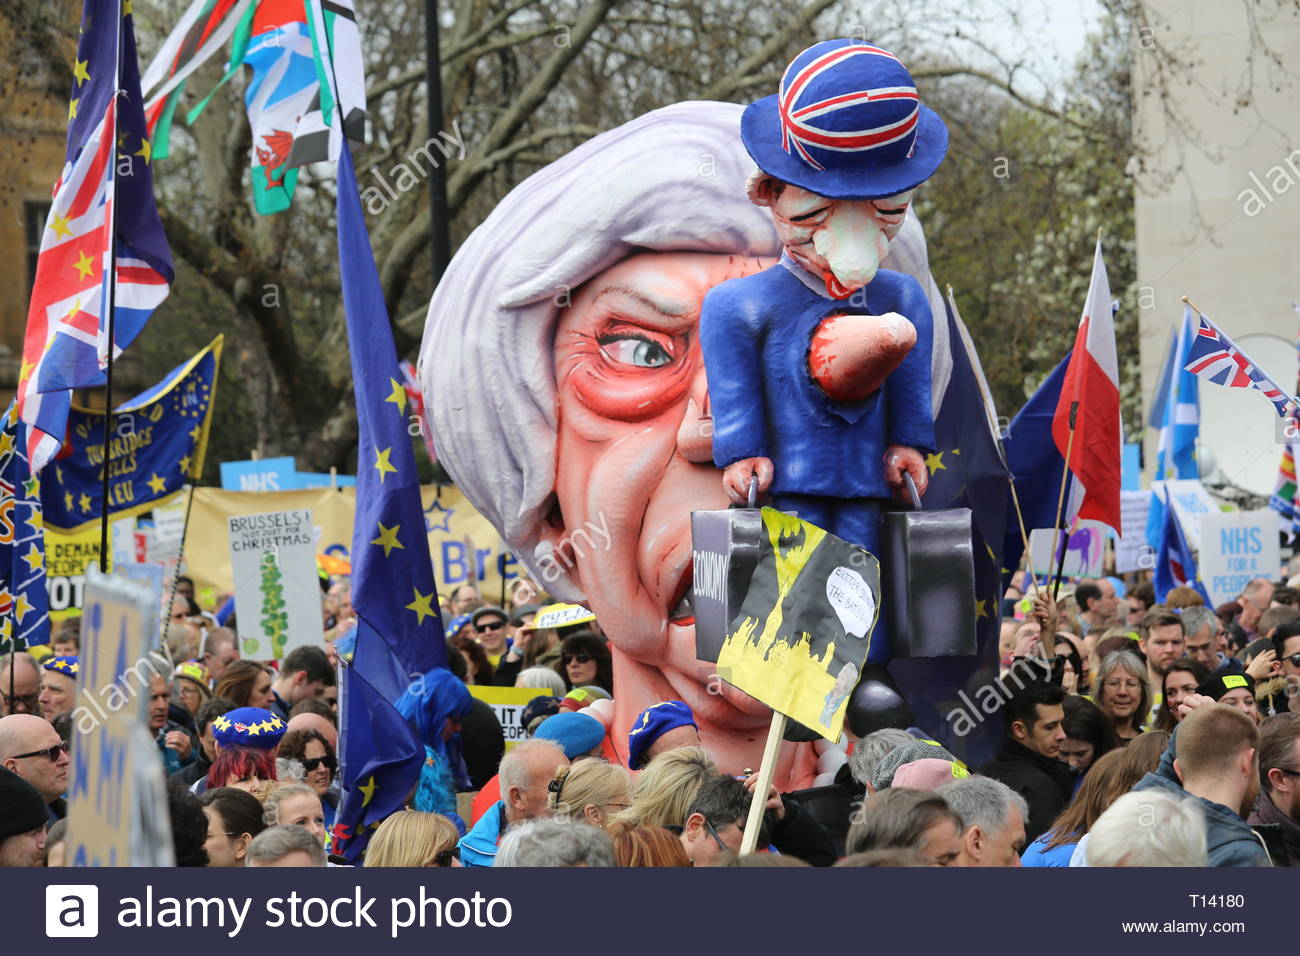 London, UK. 23rd Mar 2019. Supporters of a final say on leaving the EU have started gathering in London for the protest which will end up in Westminster.Many well known speakers including Tom Watson has said he will take part in the rally. Other speakers so far have included Caroline Lucas and Clive Lewis. Credit: Clearpix/Alamy Live News Credit: Clearpix/Alamy Live News Stock Photo